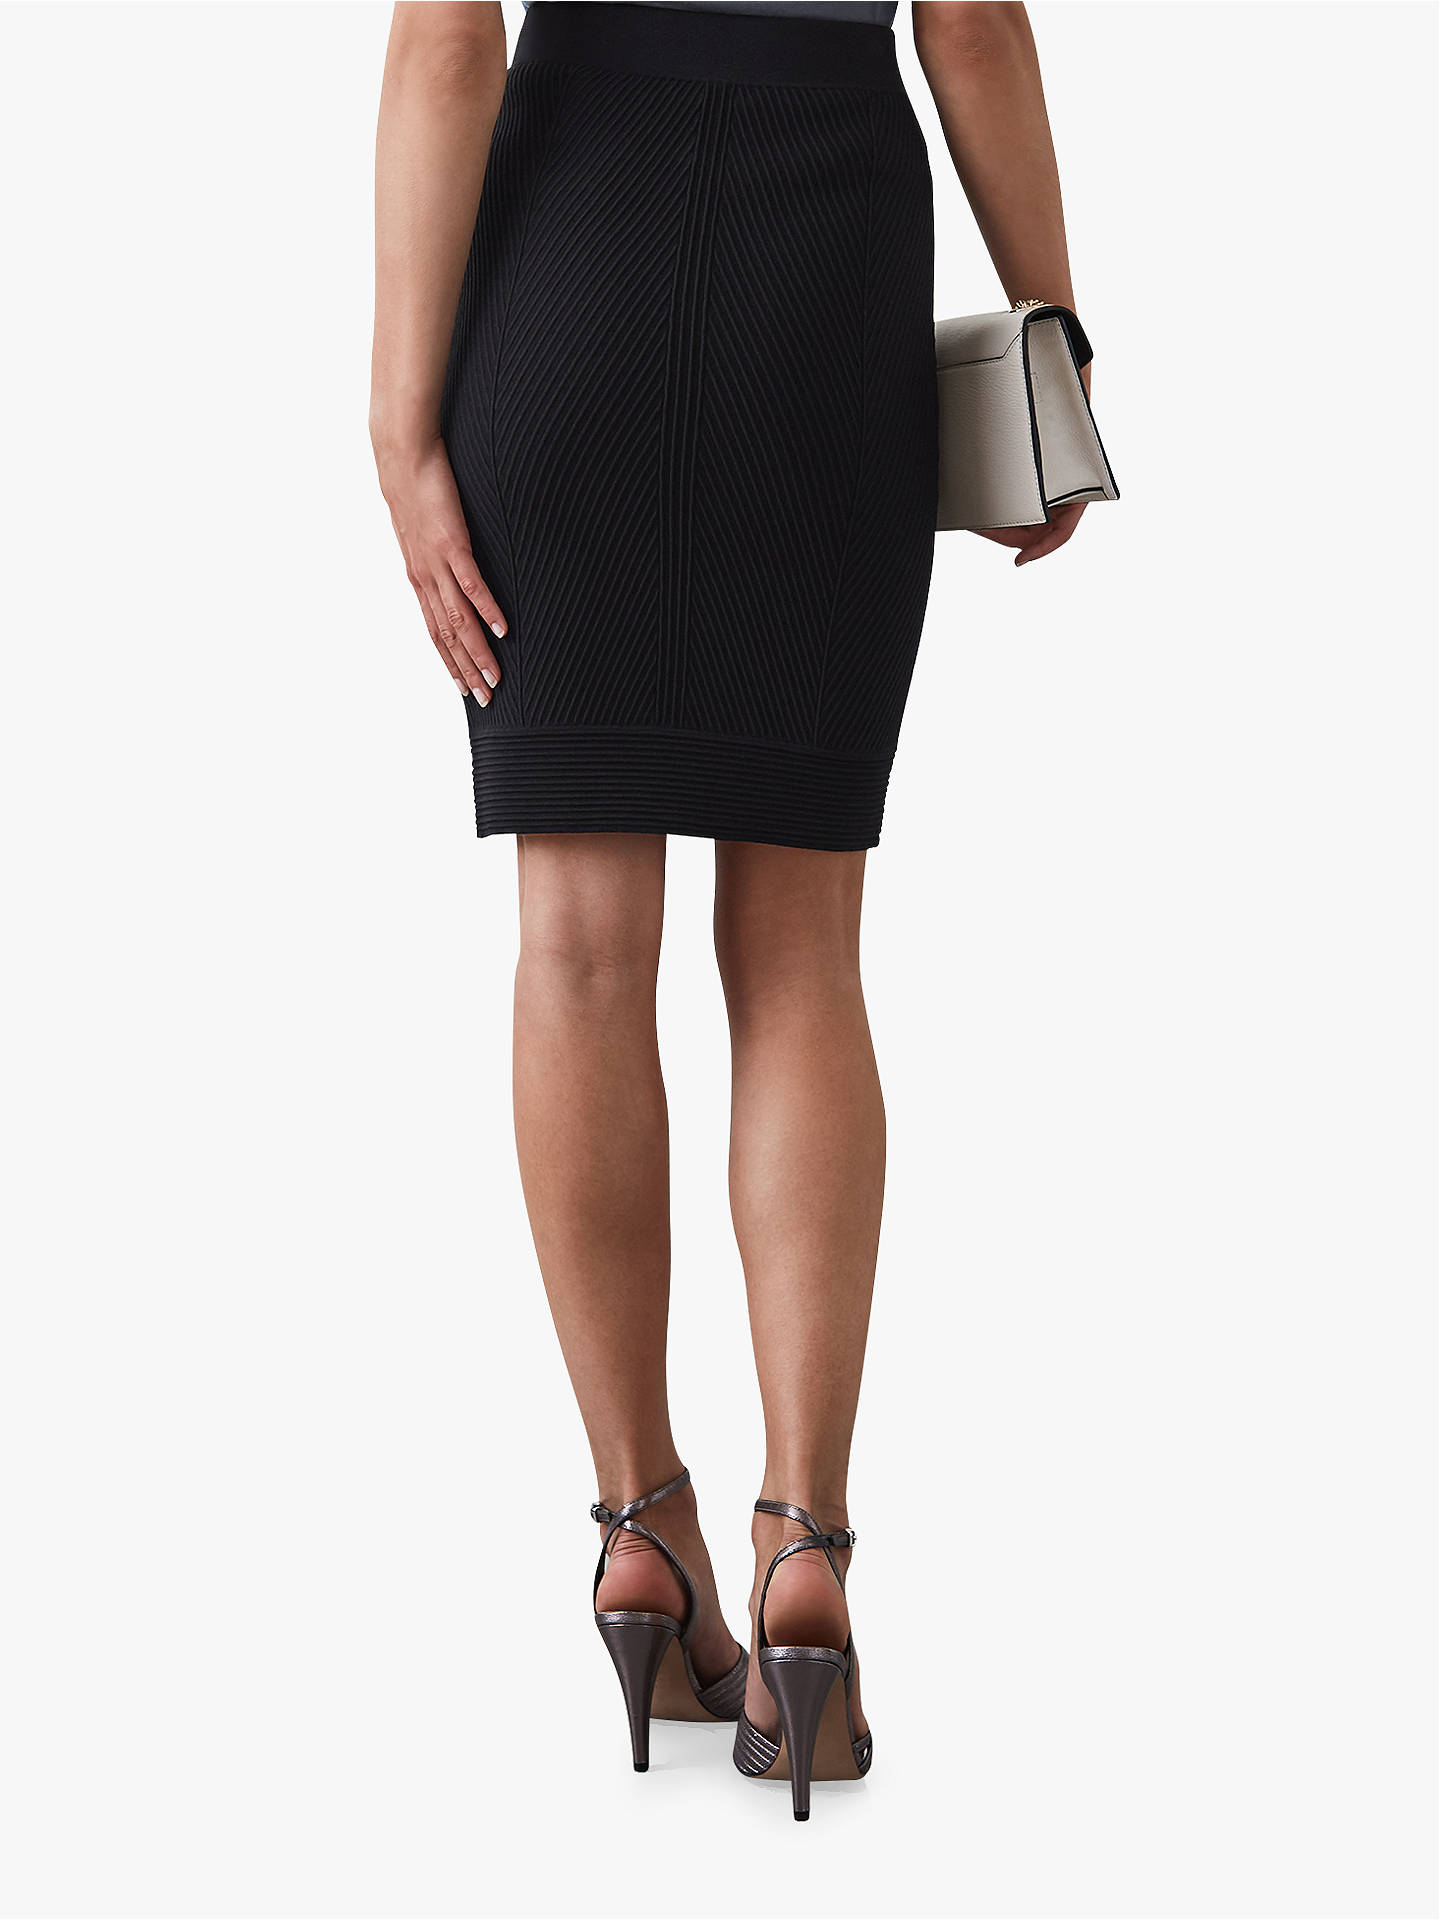 BuyReiss Melina Textured Knit Skirt, Black, XS Online at johnlewis.com